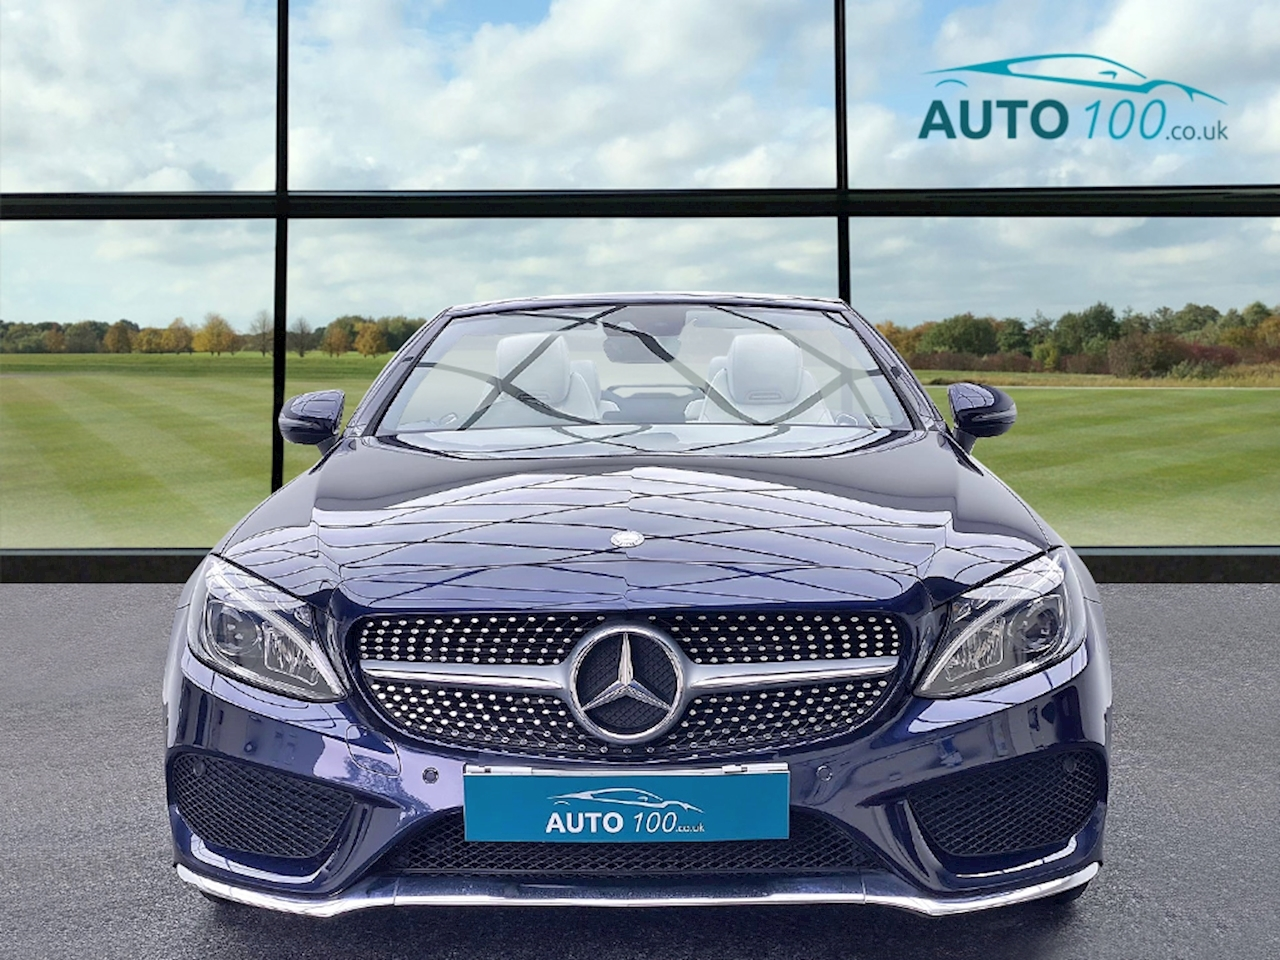 Mercedes-Benz C Class C 220 D 4Matic Amg Line Convertible 2.1 Automatic Diesel